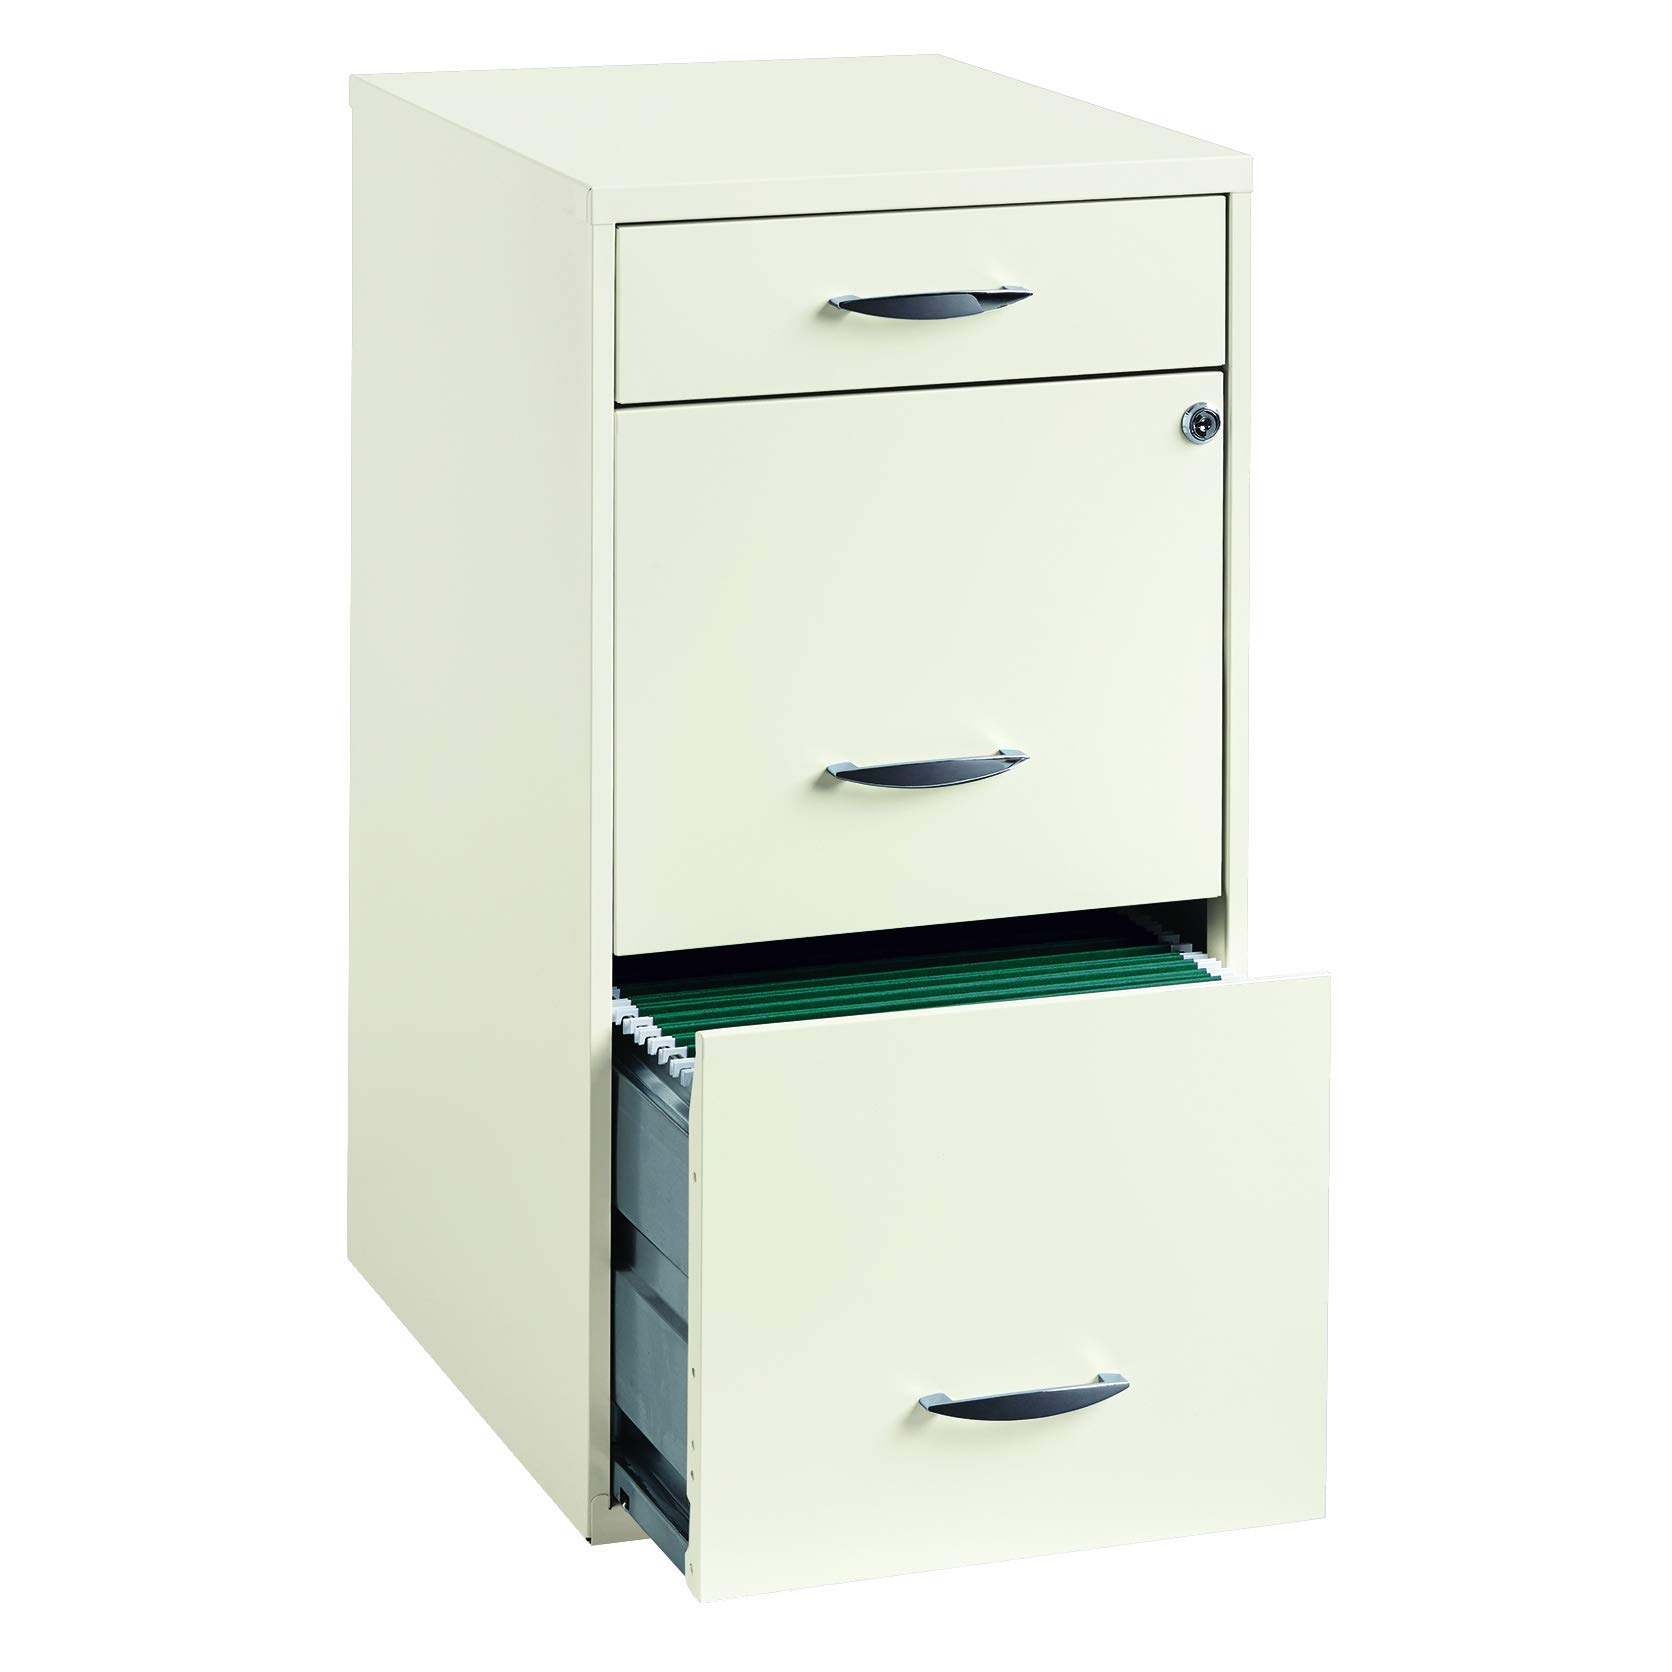 Space Solutions 18'' Deep 3 -Drawer Organizer File Cabinet, Pearl White